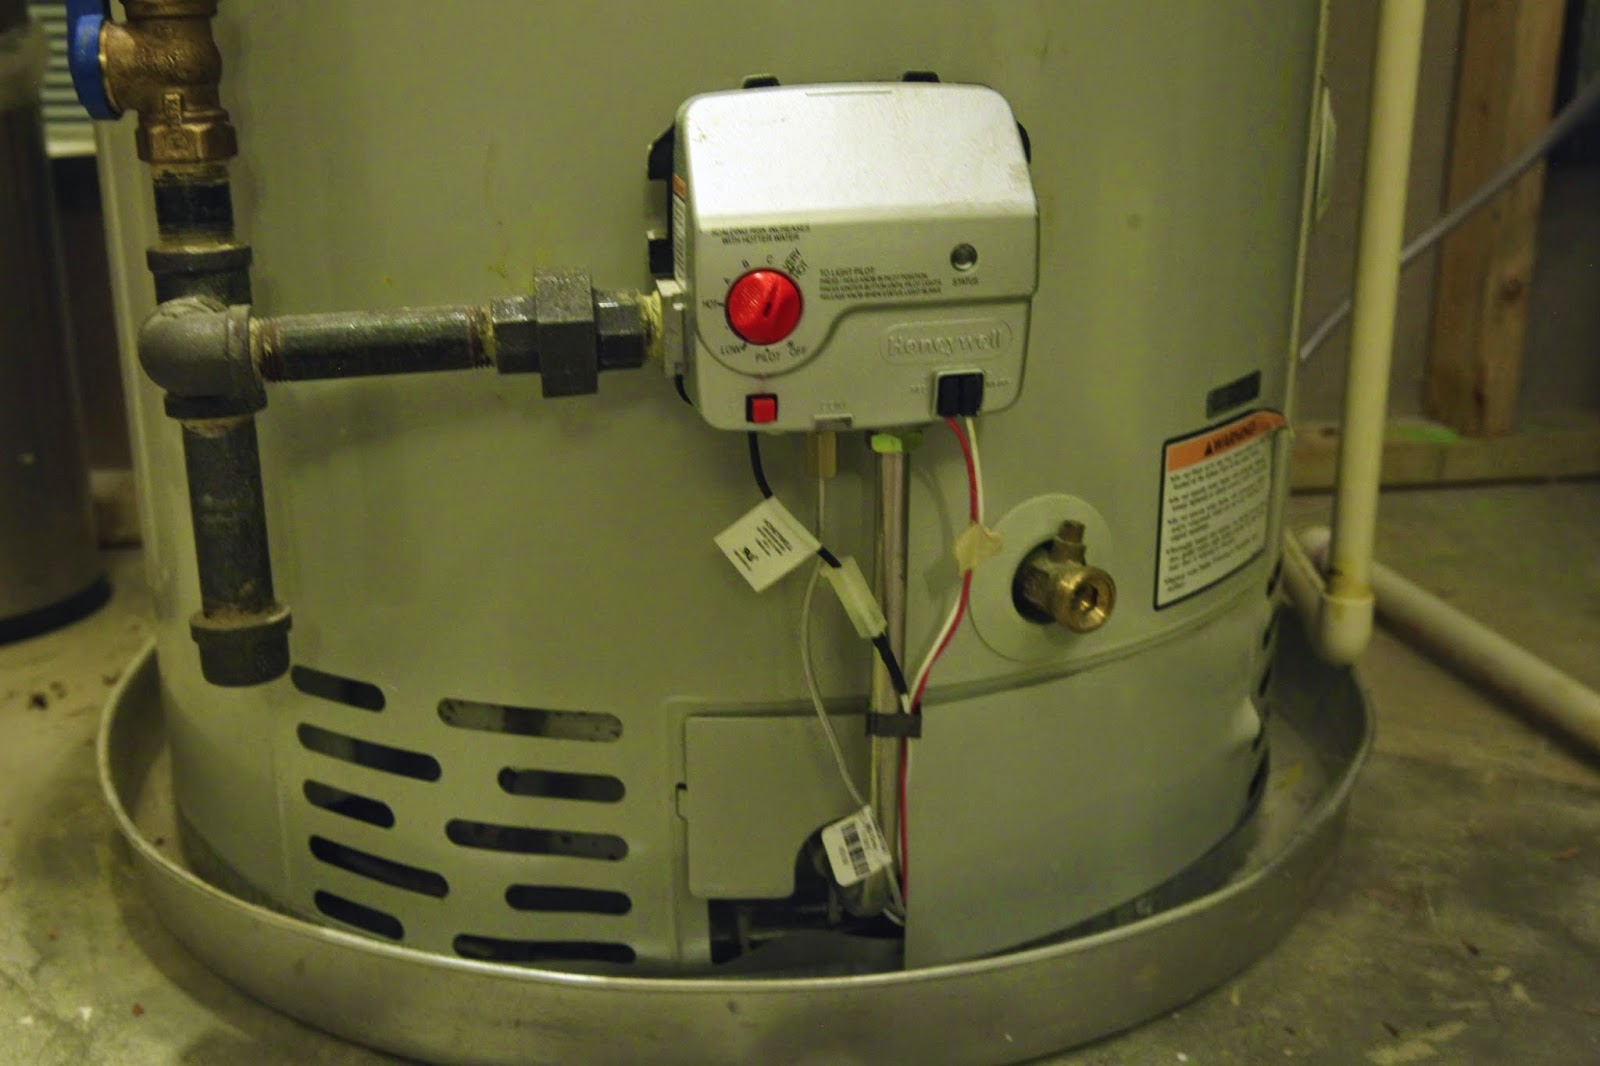 Base Of The Water Heater